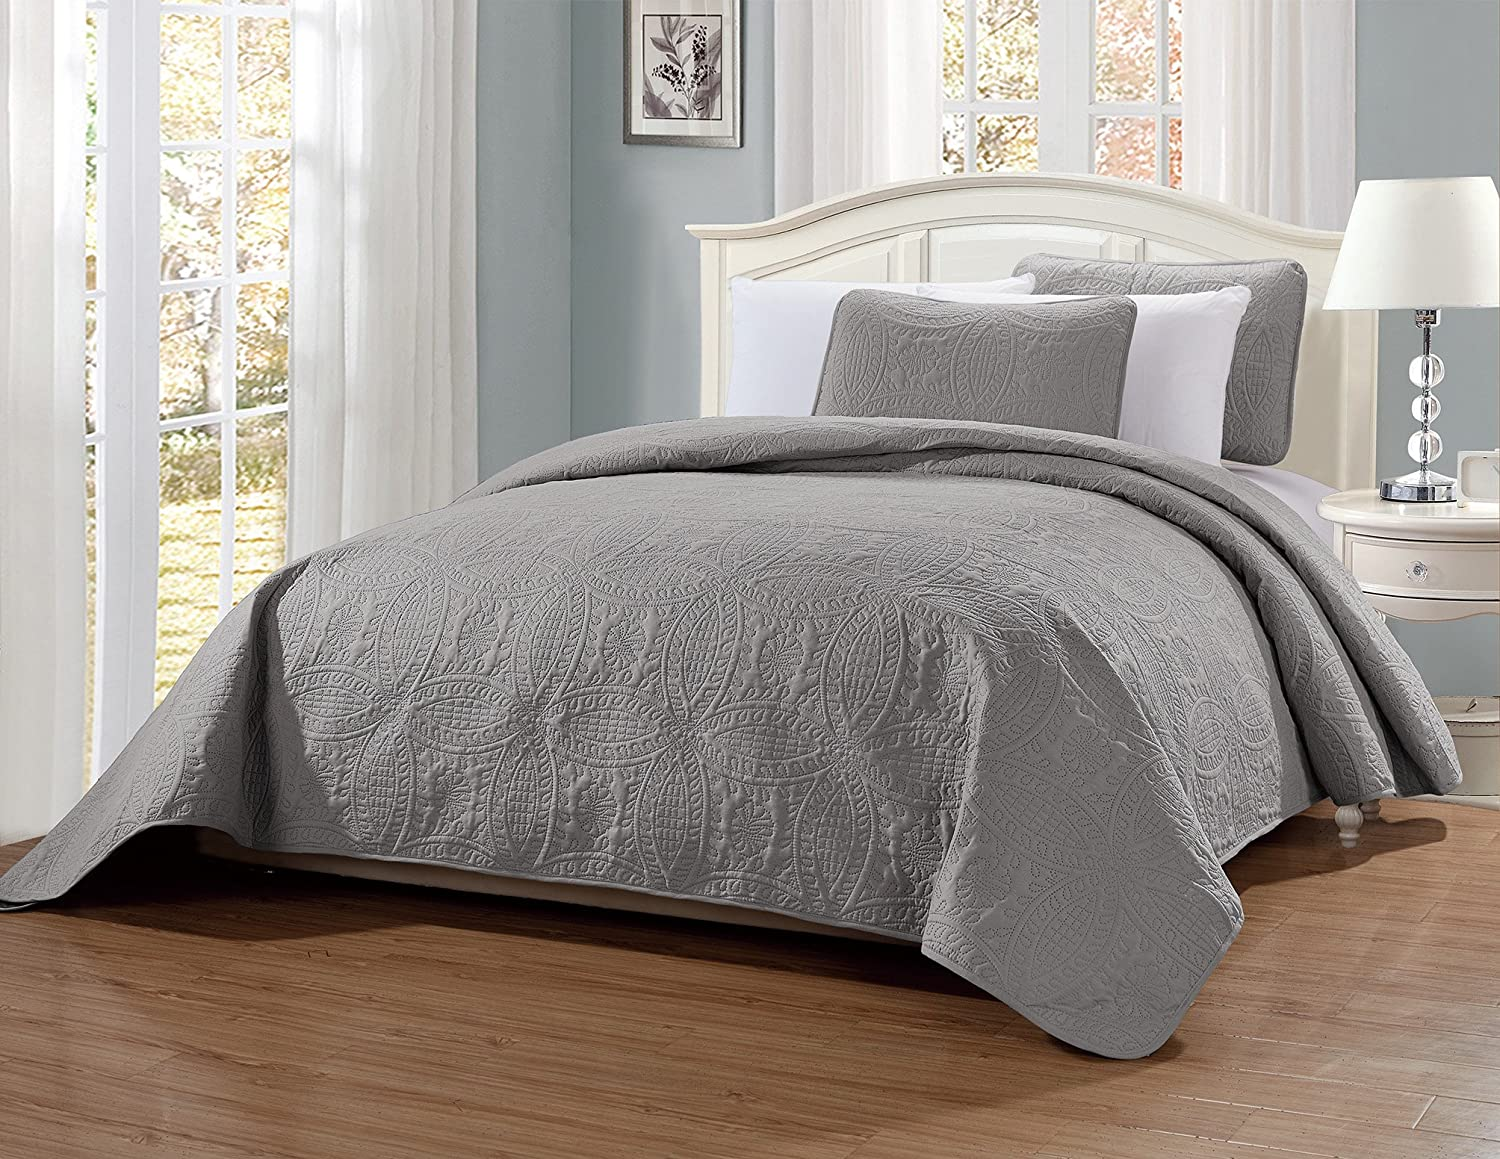 MK Home Mk Collection 3pc King/California King Solid Embossed Bedspread Bed Cover Over Size Ivory New